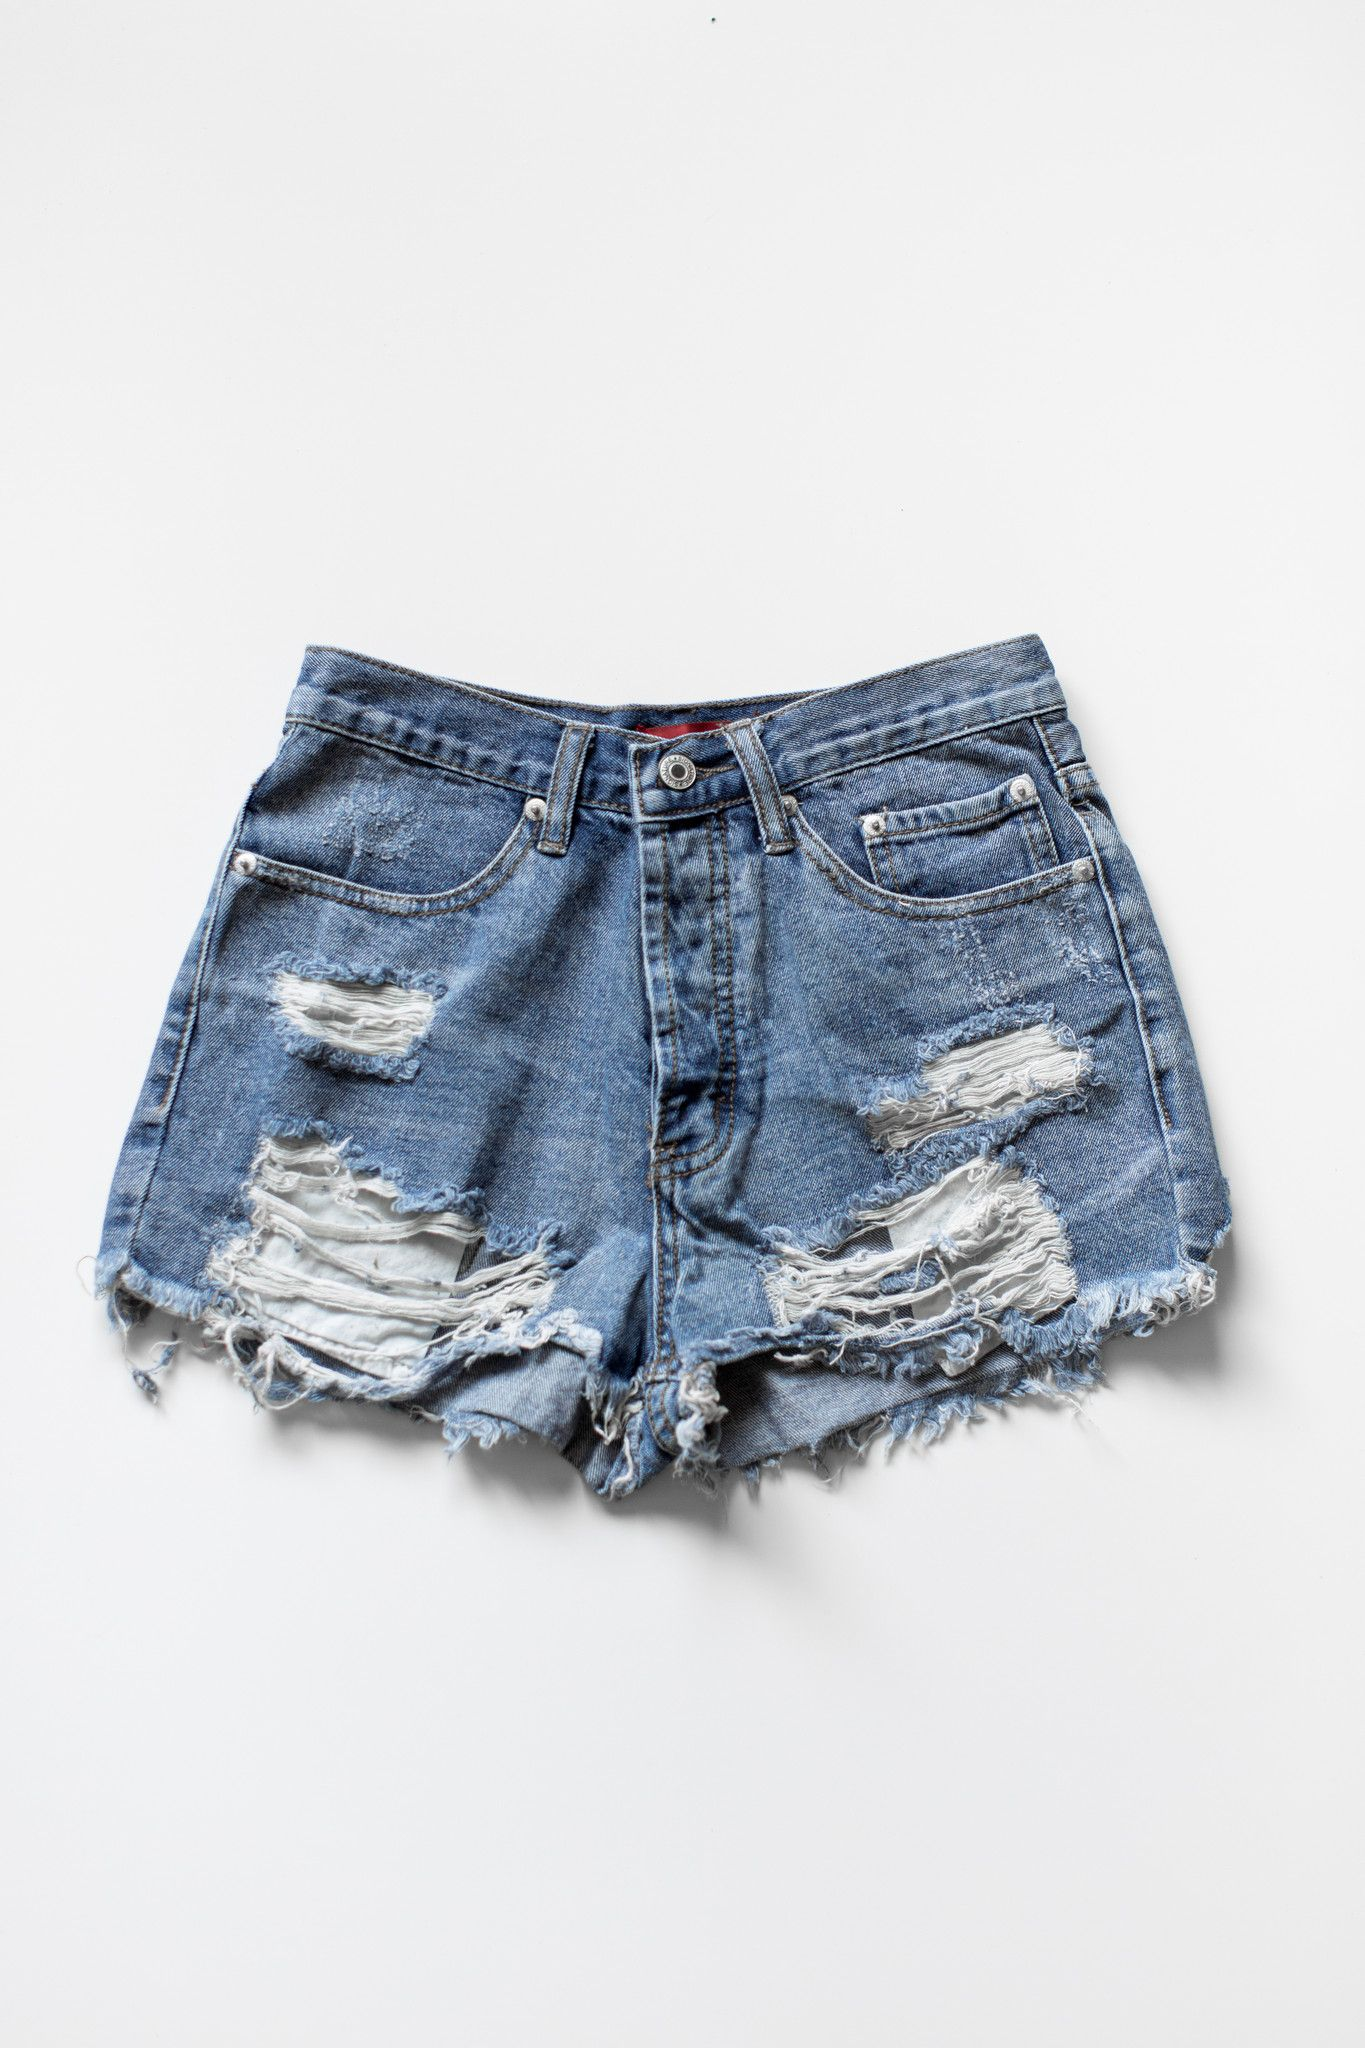 c2bfcbd0306 Vintage inspired high waist denim shorts with frayed and ripped detailing  for a